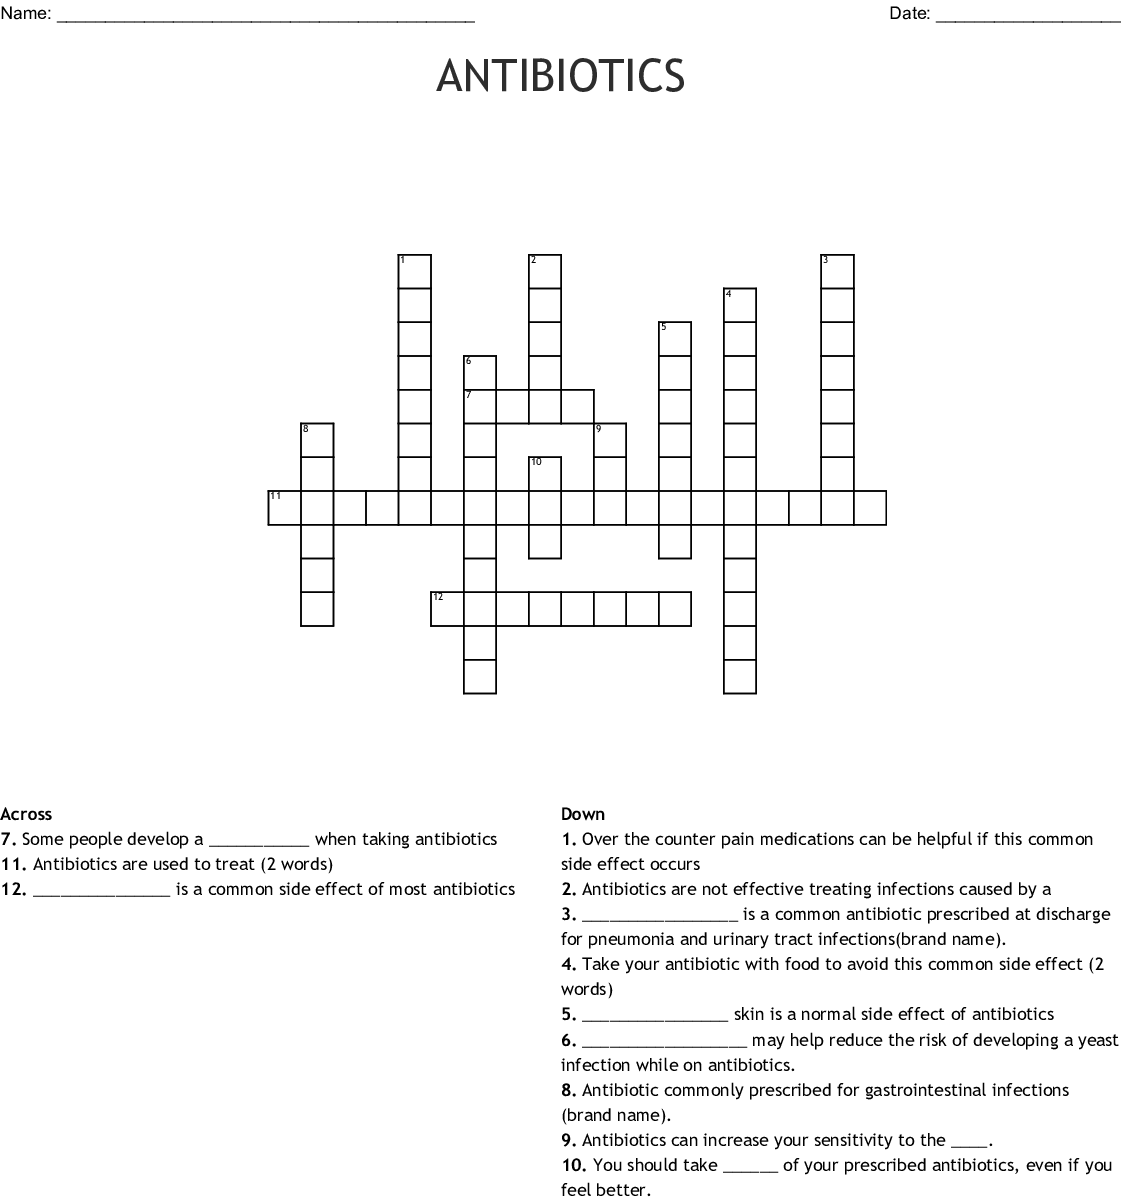 Antibiotics Medication And Side Effects Word Search